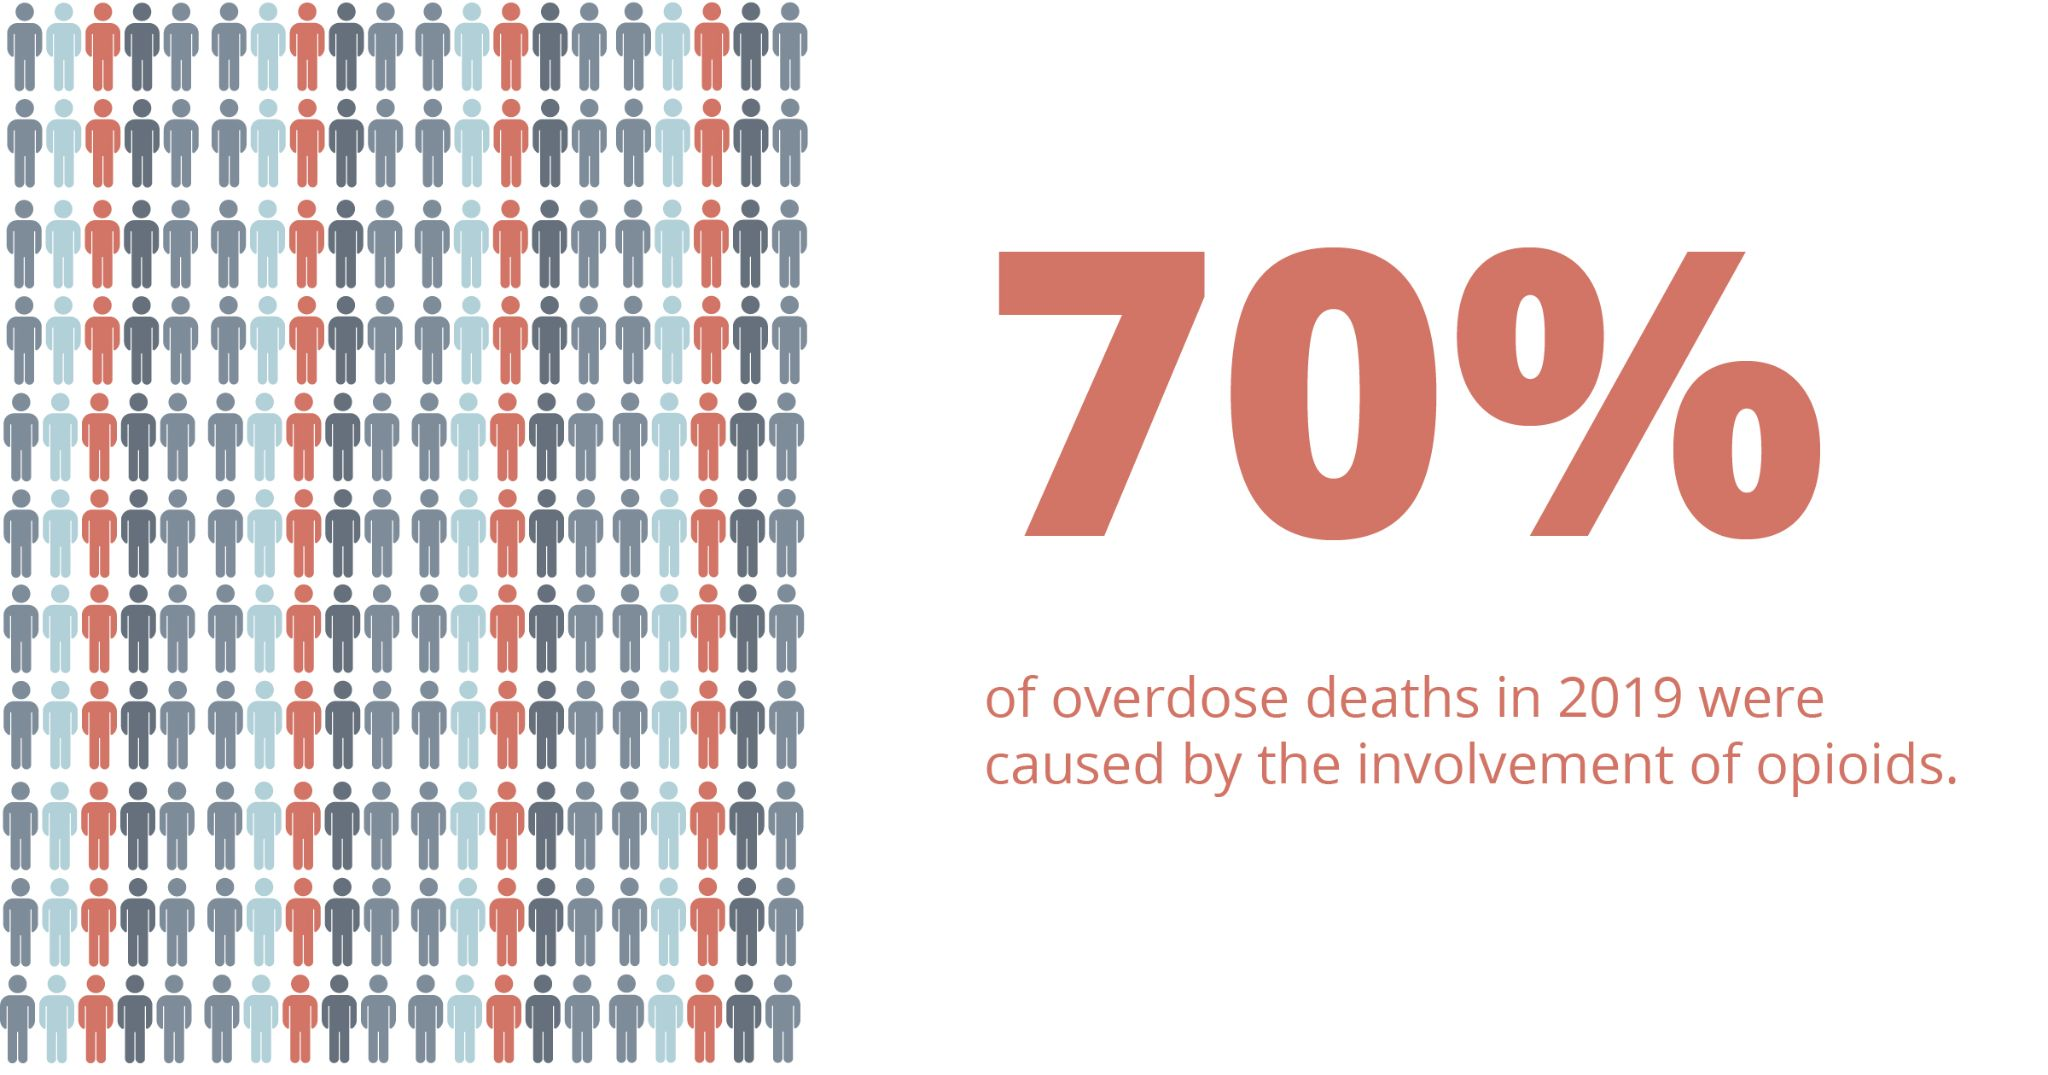 70% of overdose deaths in 2019 were caused by the involvement of opioids